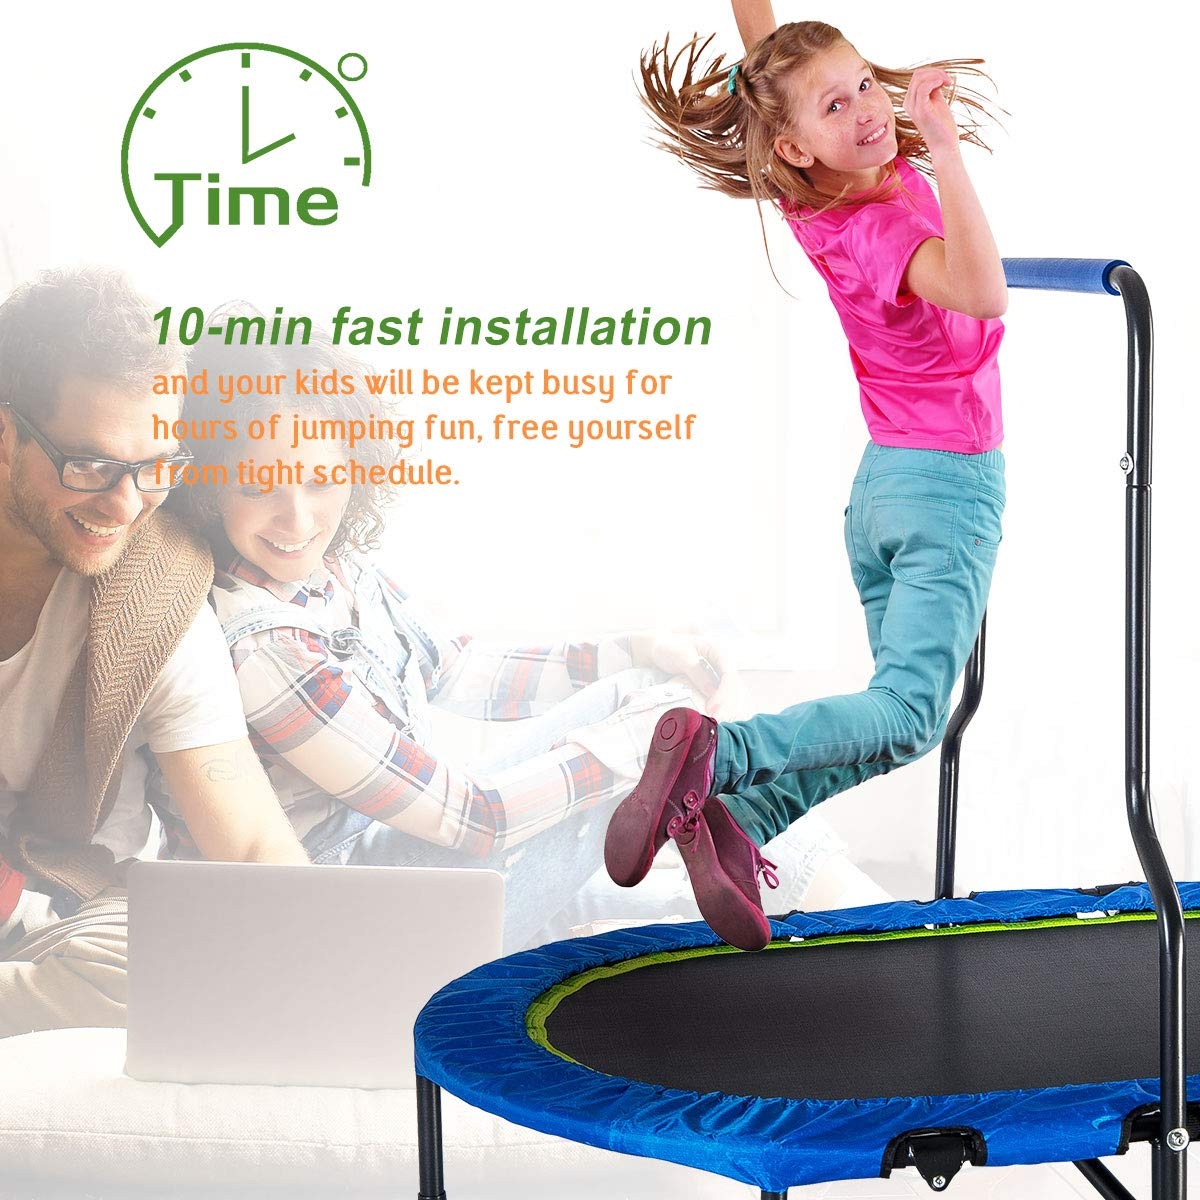 Merax Mini Rebounder Trampoline with Handle for Two Kids, Parent-Child Trampoline (Blue) by Merax (Image #4)